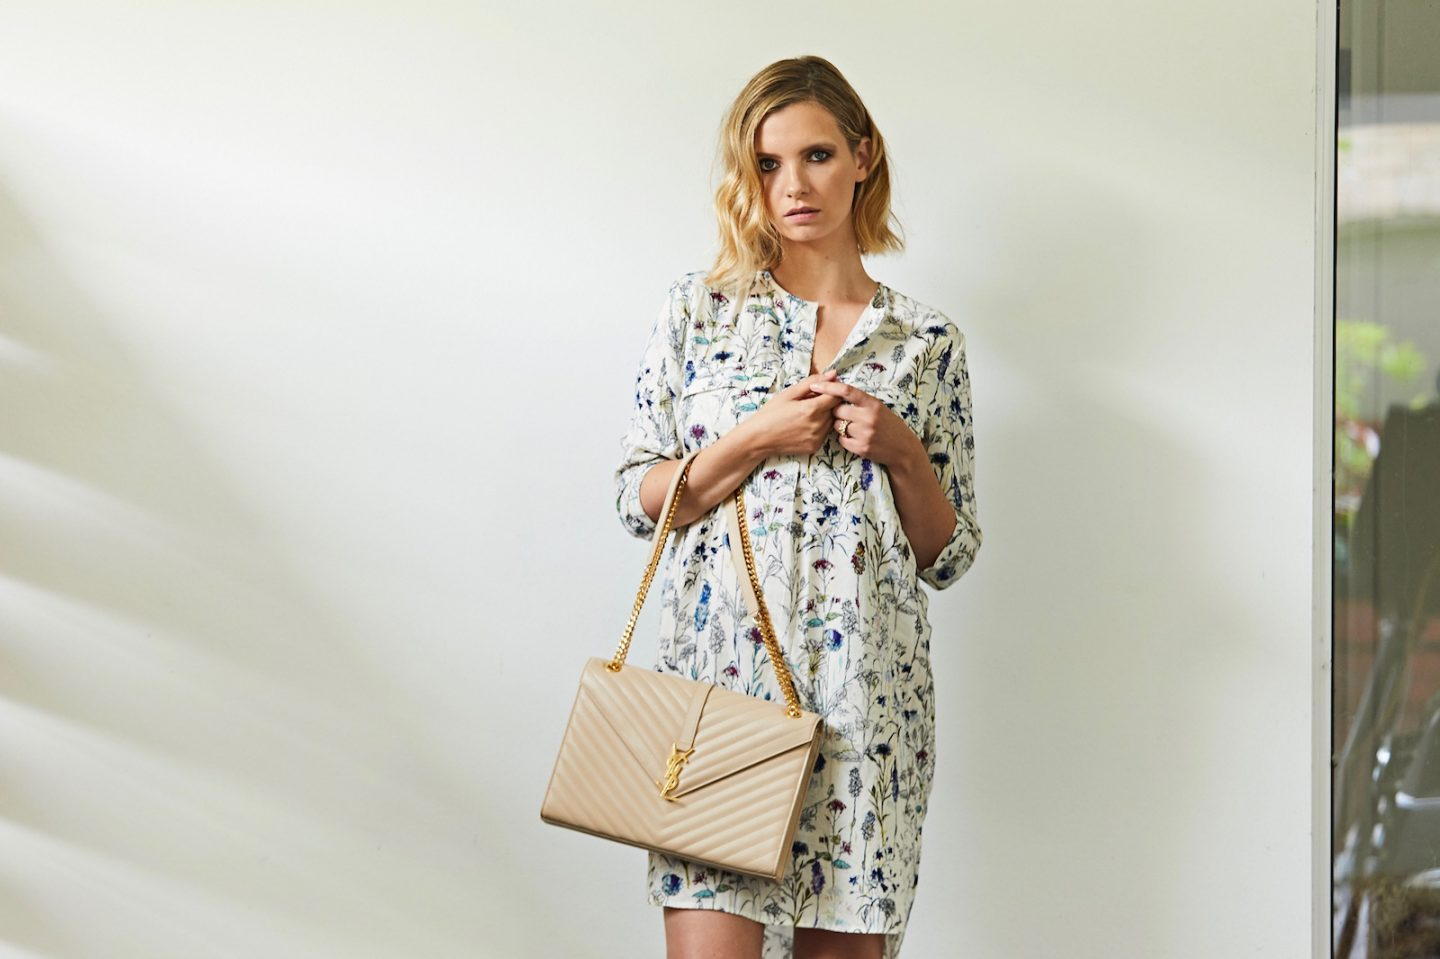 H&M shirt dress and ysl handbag